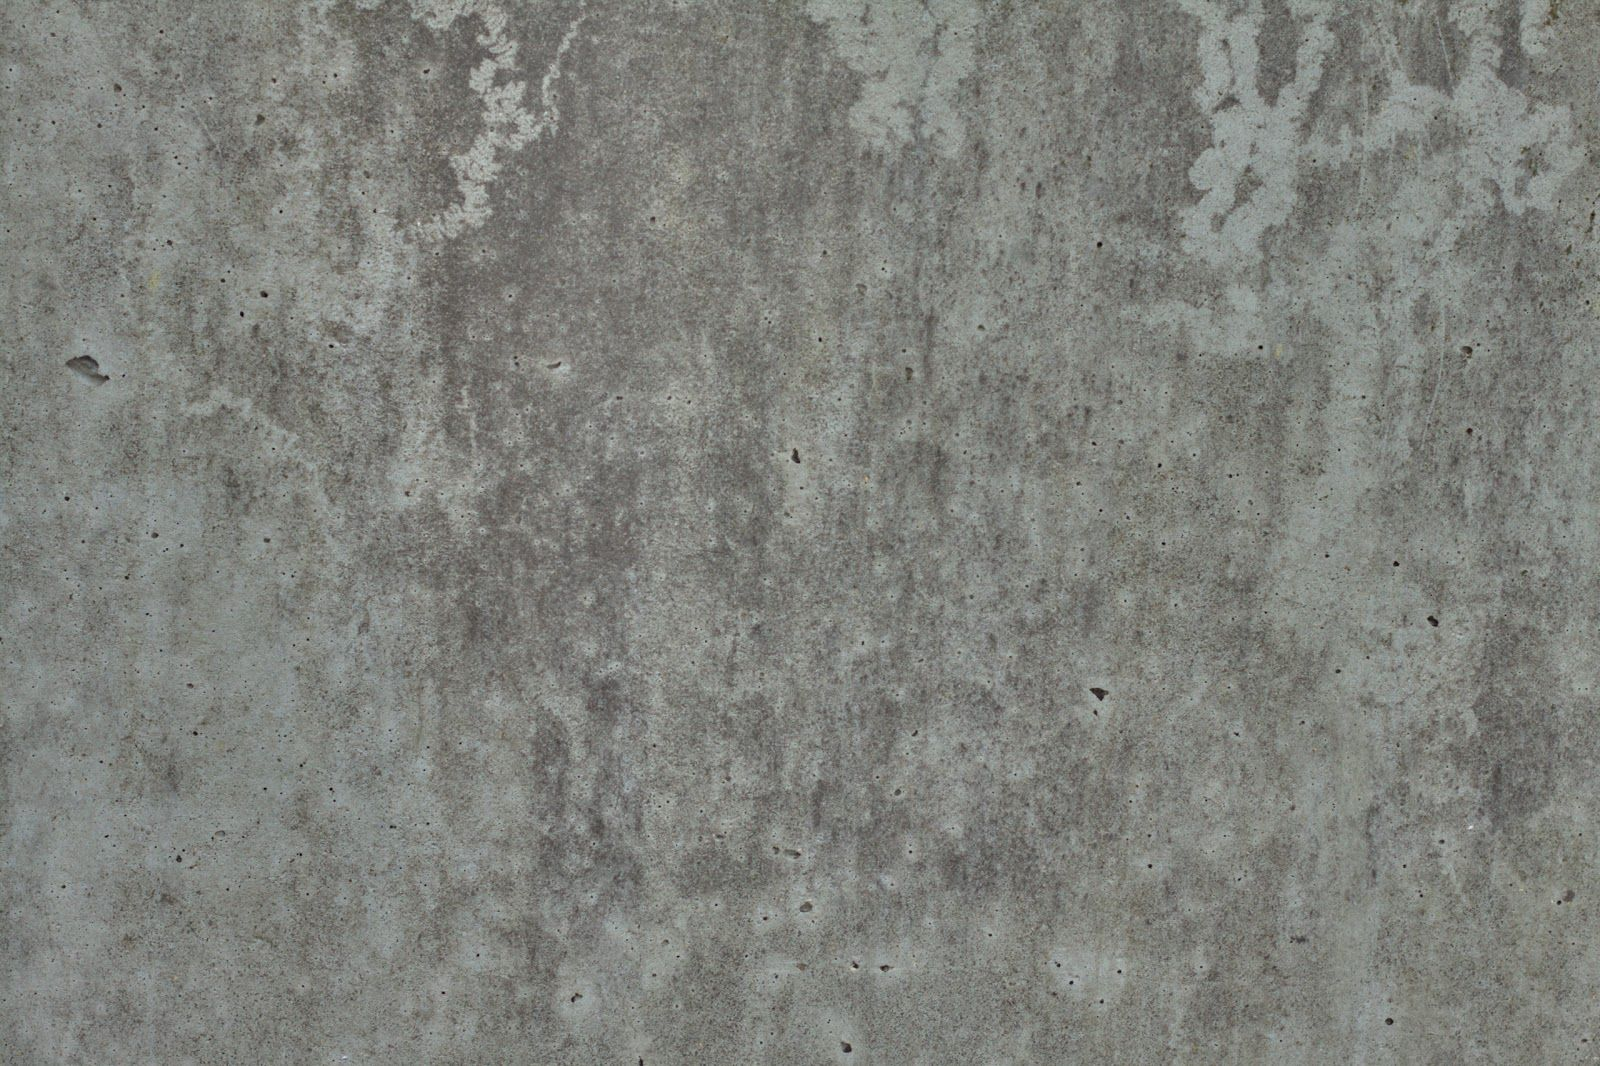 Concrete Wall Smooth Pillar Texture Cement Texture